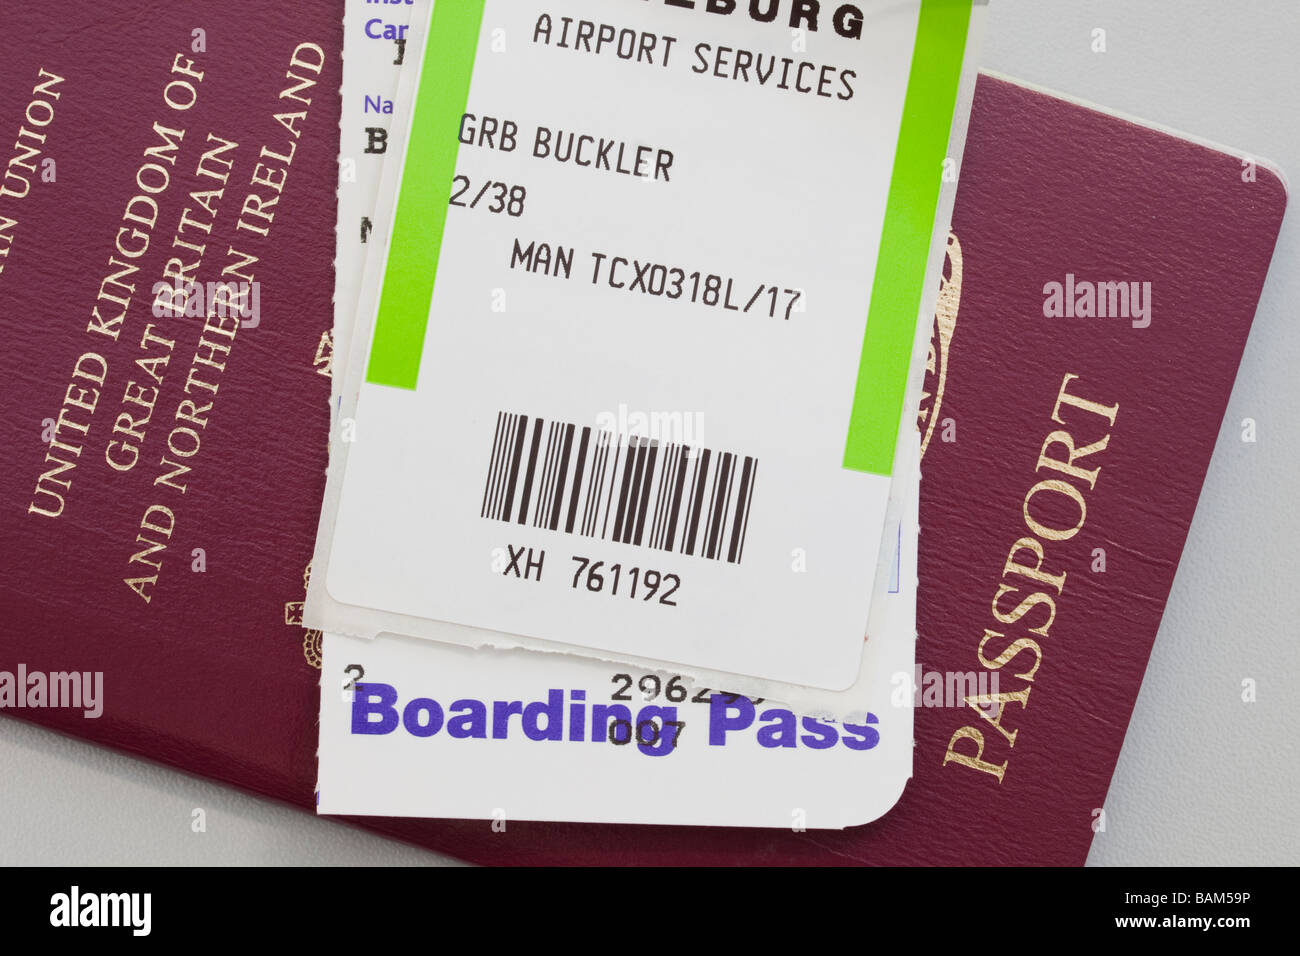 United Kingdom British passport plane flight Boarding Pass and luggage ticket for travel abroad - Stock Image